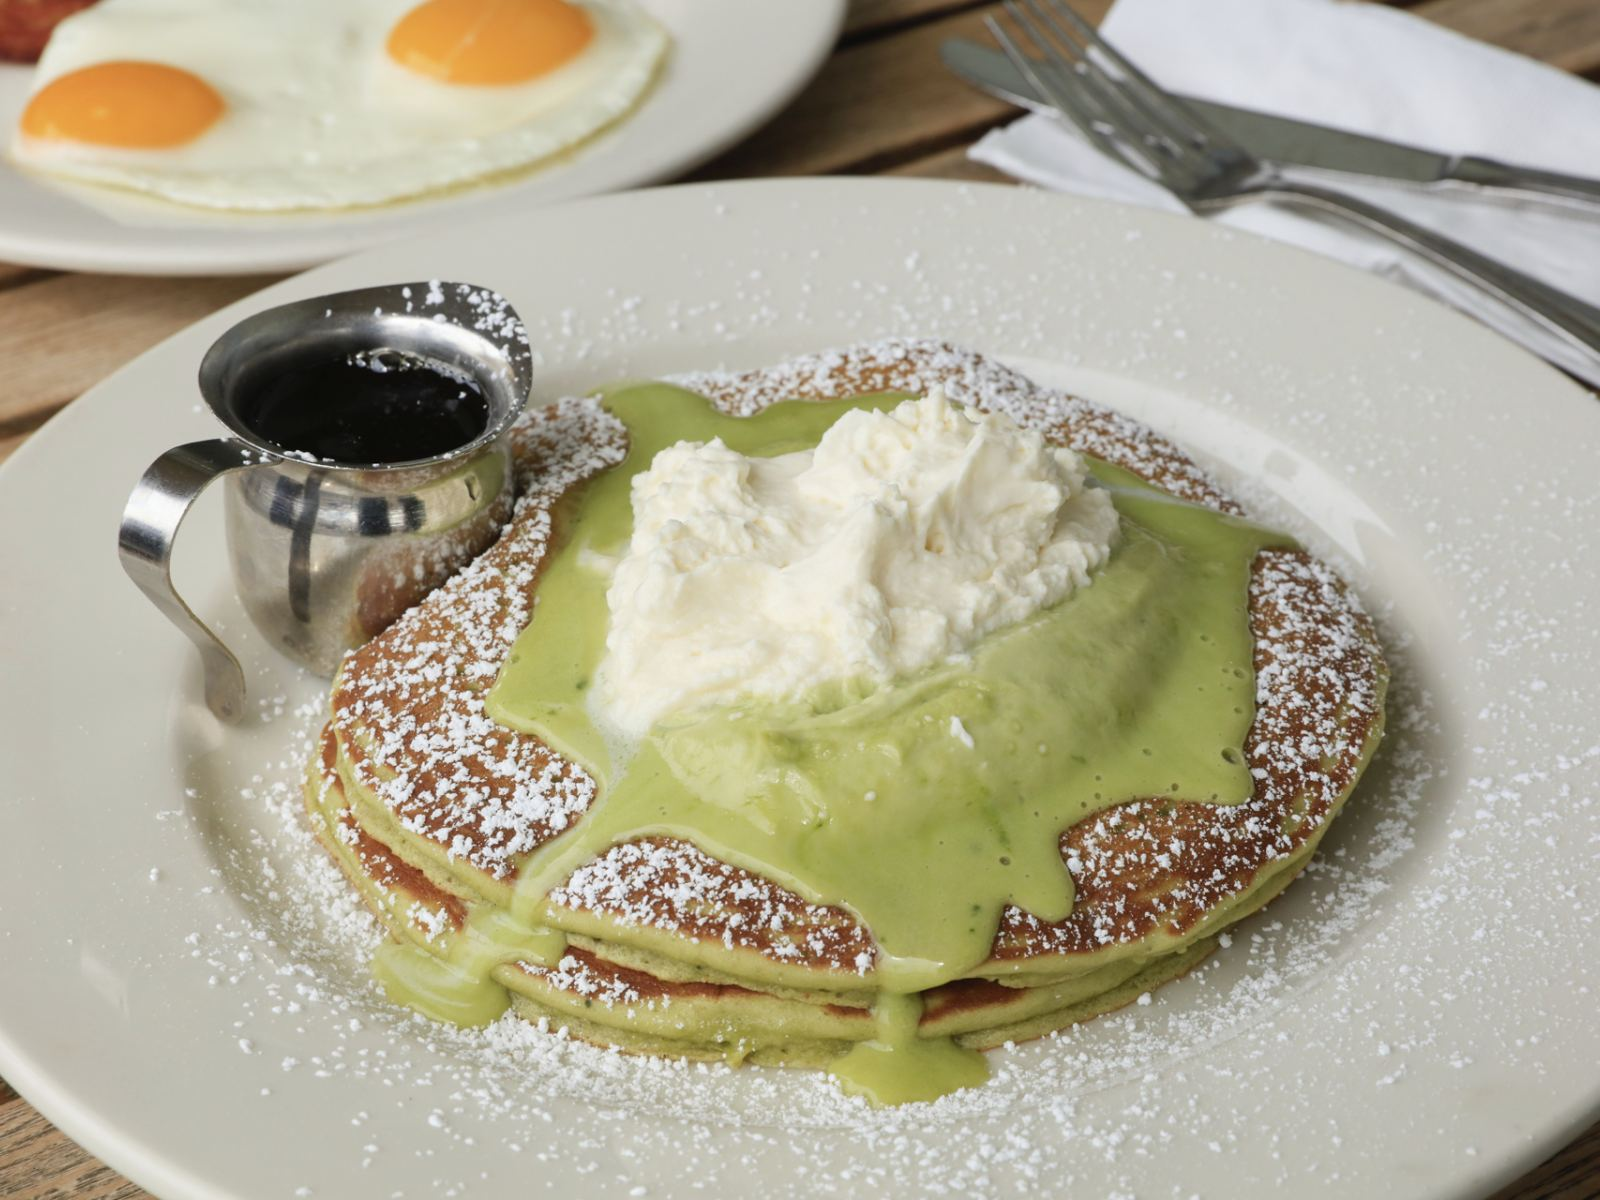 Green Tea Pancakes at Bea Bea's